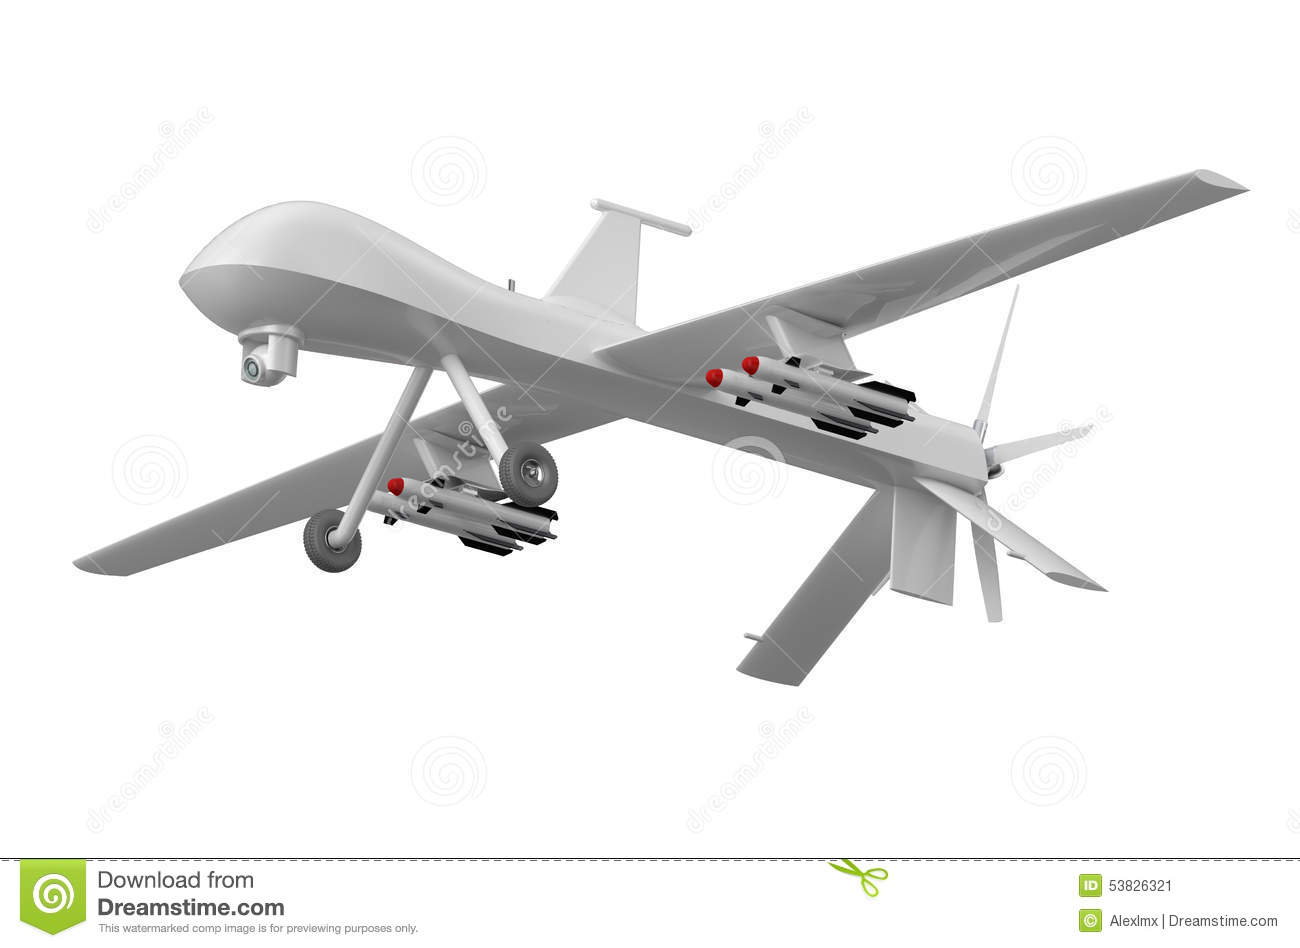 remote control spy drone with Stock Illustration Military Predator Drone Isolated White Background Image53826321 on Stock Illustration Side View Drone Vector Illustration Image50270363 also Stock Illustration Military Predator Drone Isolated White Background Image53826321 further Snow Dirt Bike Conversion Kit as well 201112280000 further Uav3arfbrelr.